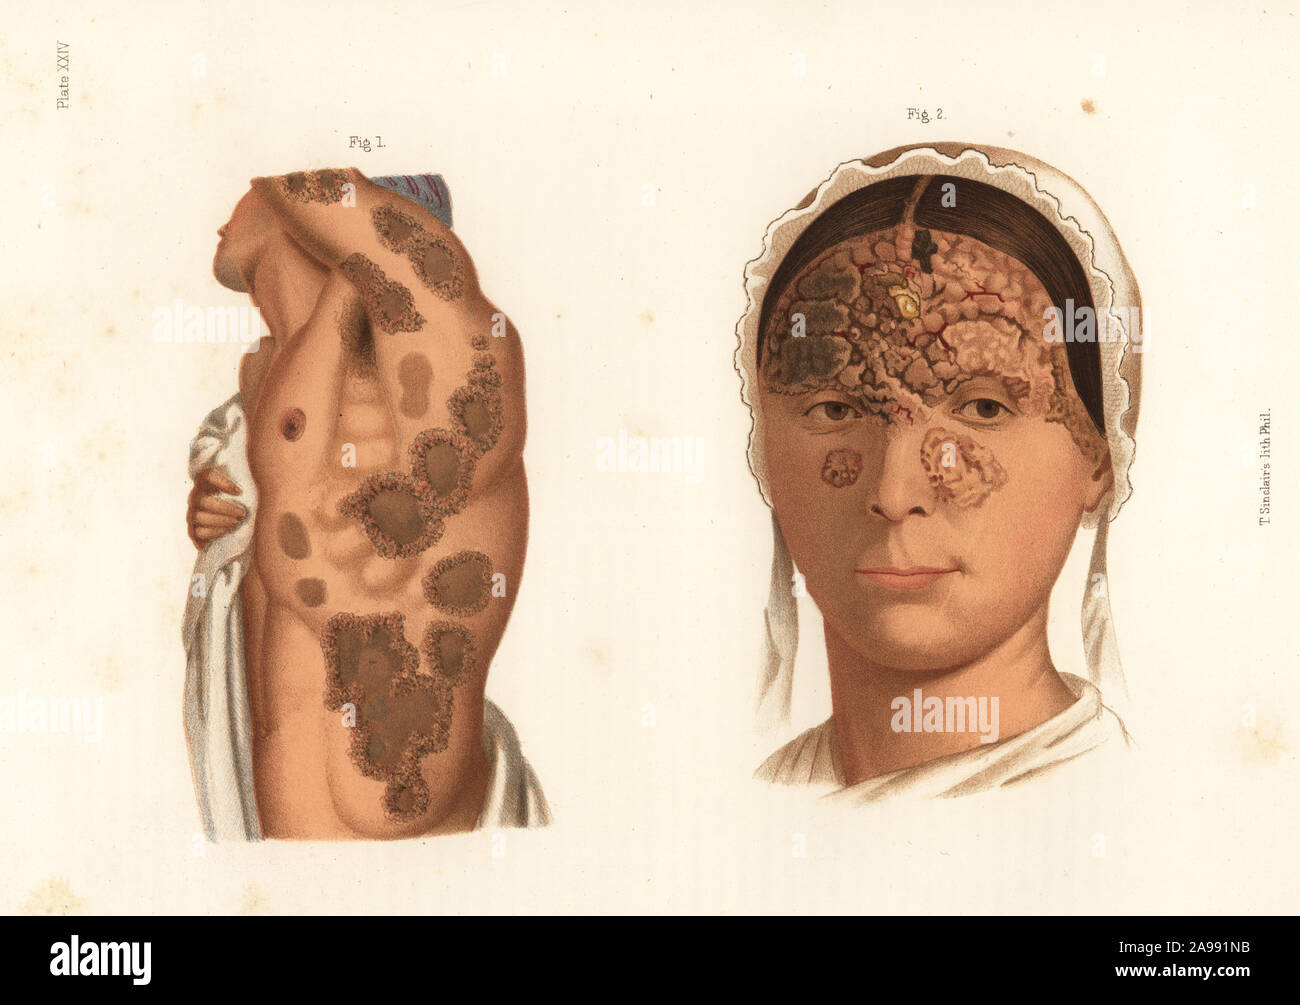 Syphilitic tubercules on the torso and arms 1, and suppurating tubercular syphilide on the face.Chromolithograph by T. Sinclaire from Freeman J. Bumstead's Atlas of Venereal Diseases, Henry C. Lea, Philadelphia, 1868. First American edition of Auguste Cullerier's Precis iconographique des maladies veneriennes. Stock Photo